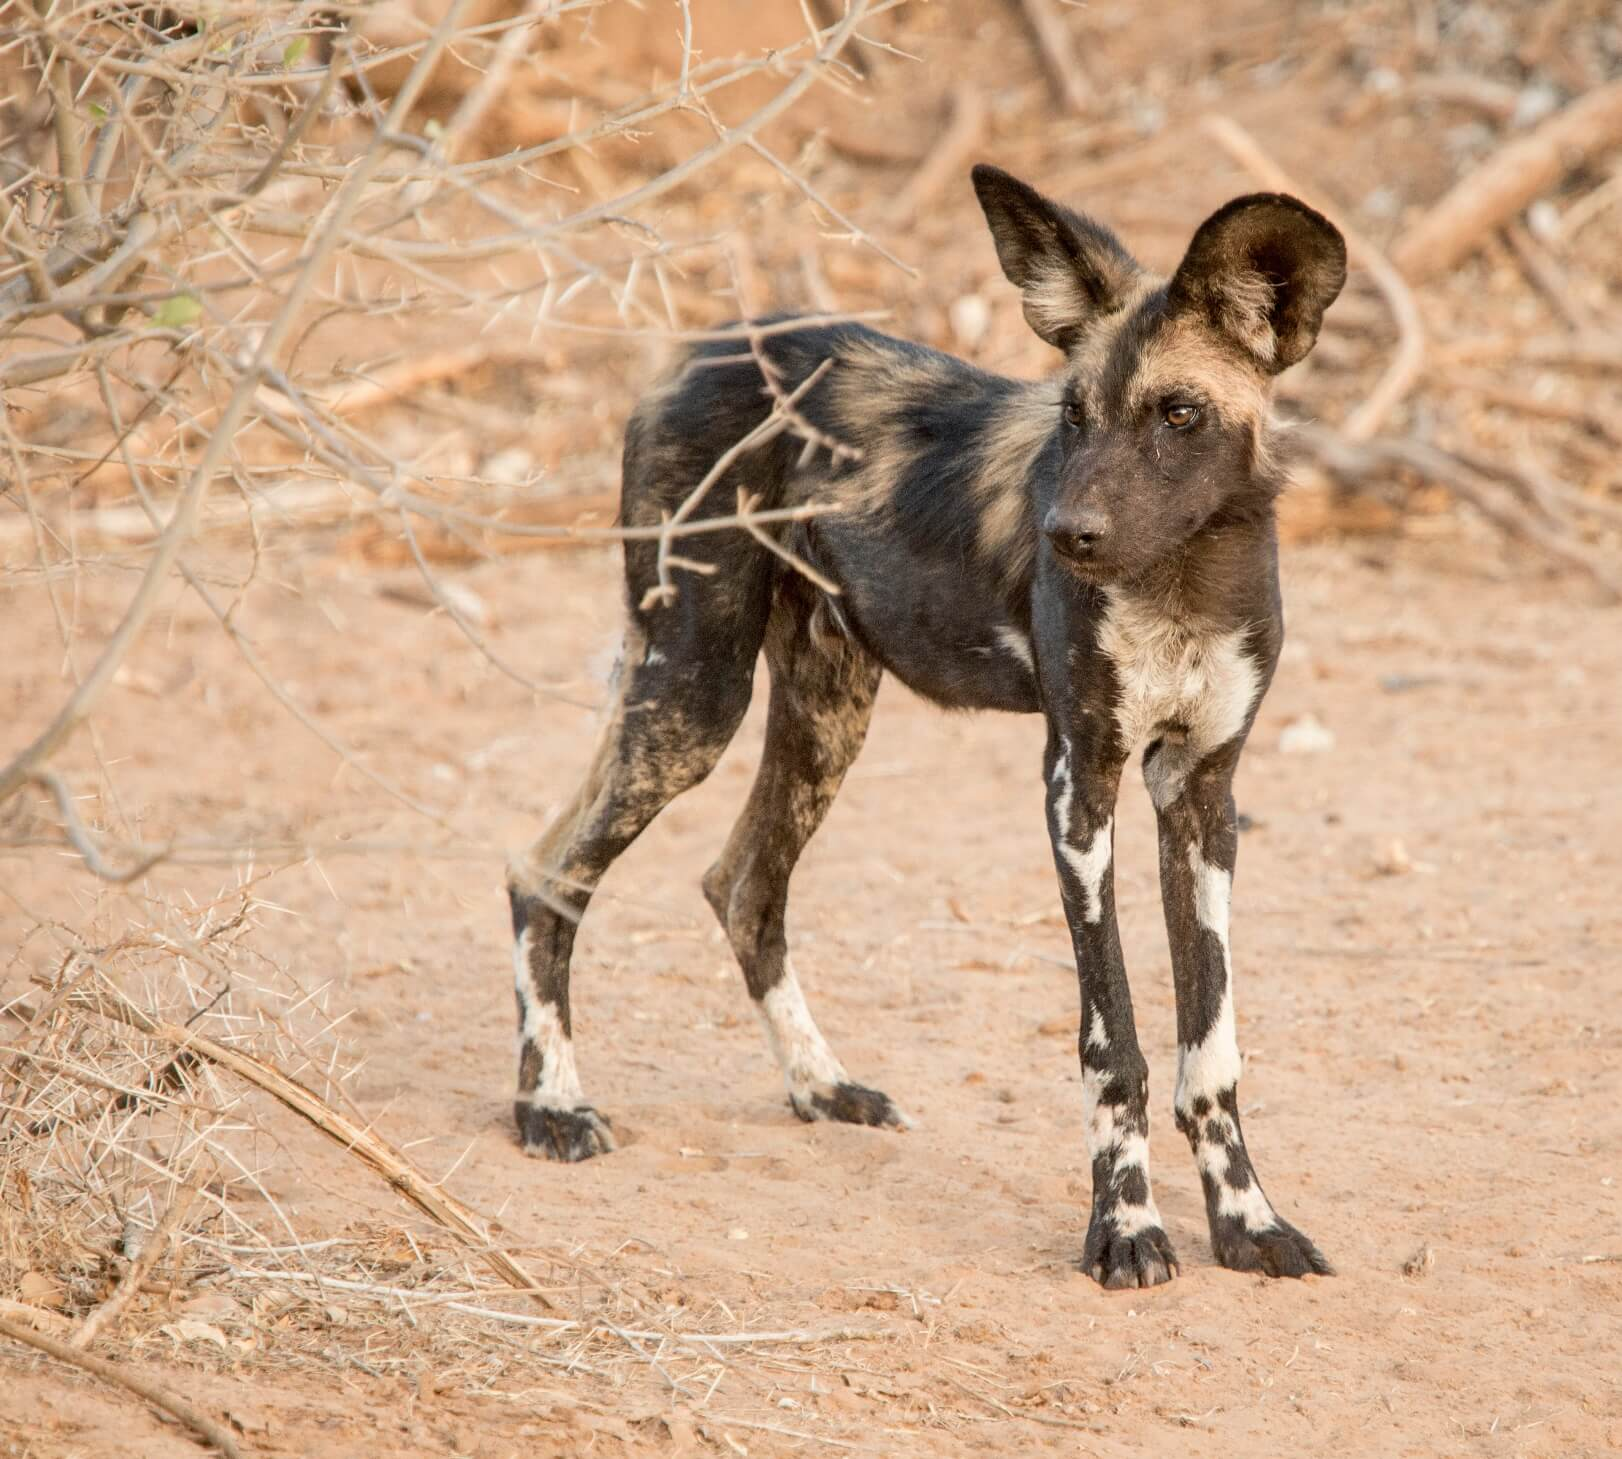 Wilddogs at Sasaab Lodge